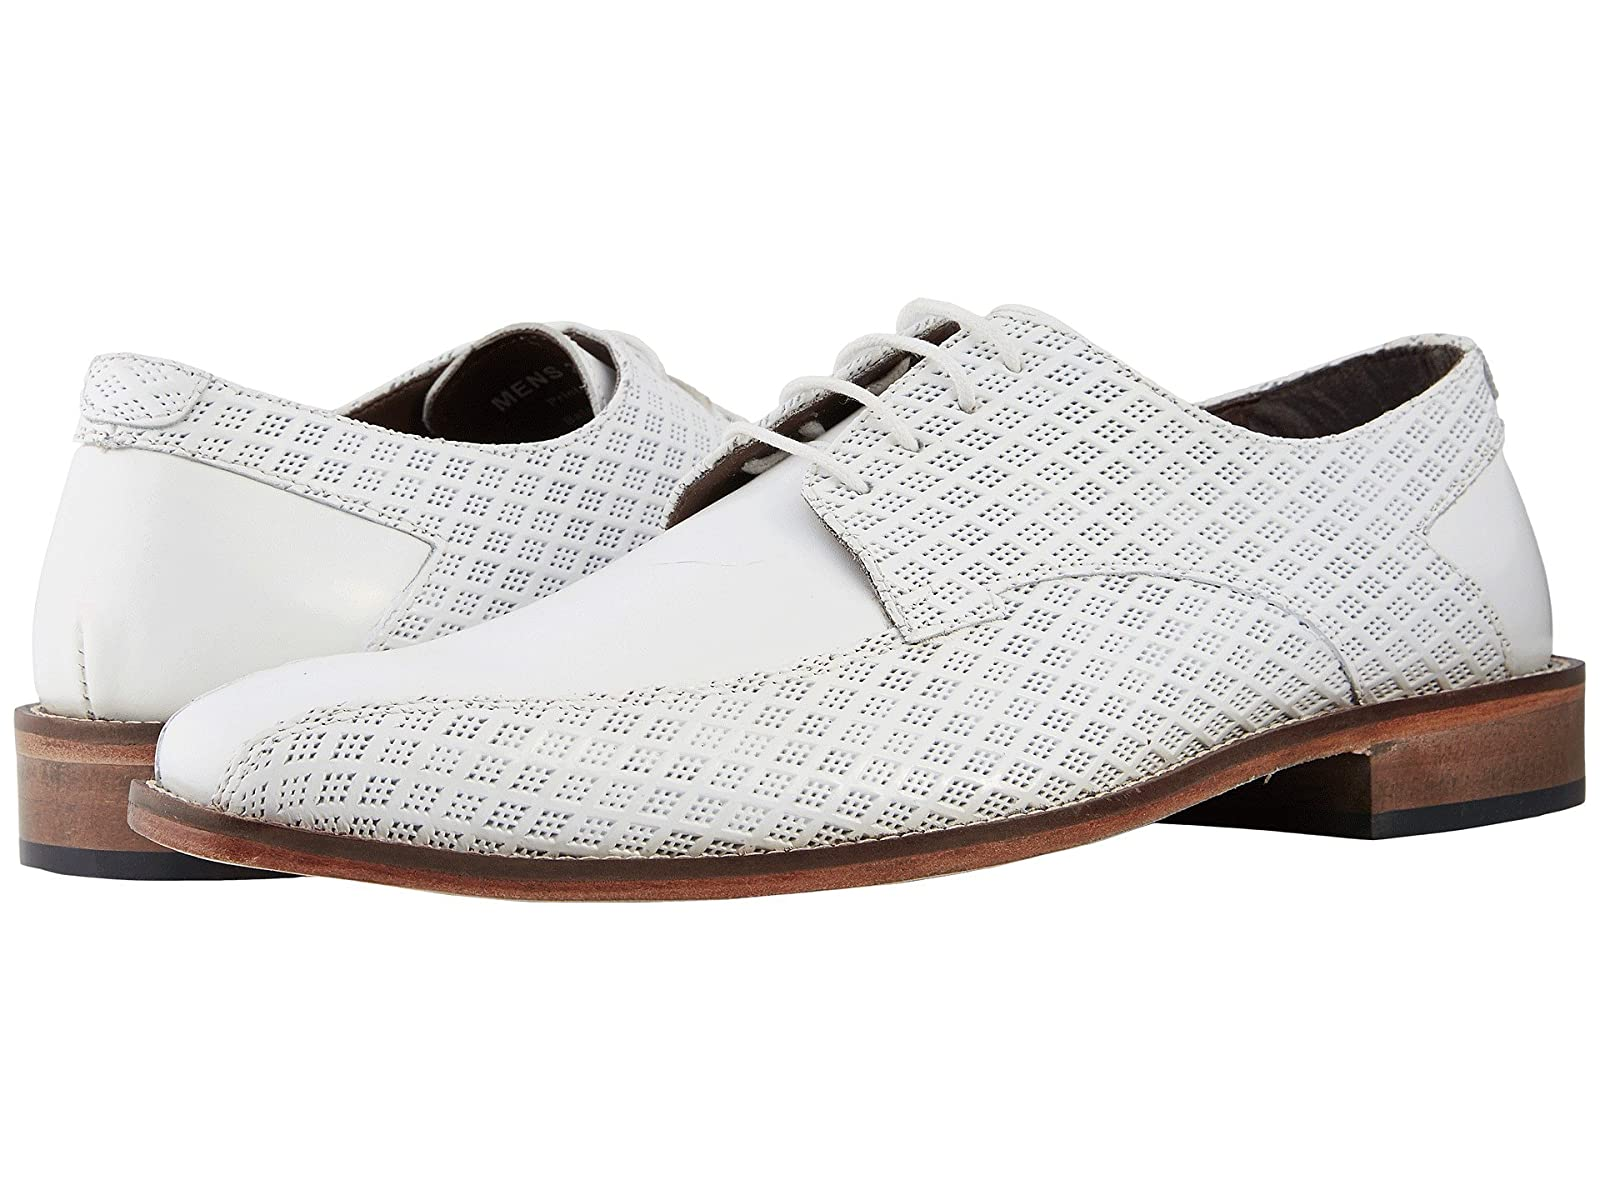 Stacy Adams GianlucaAtmospheric grades have affordable shoes